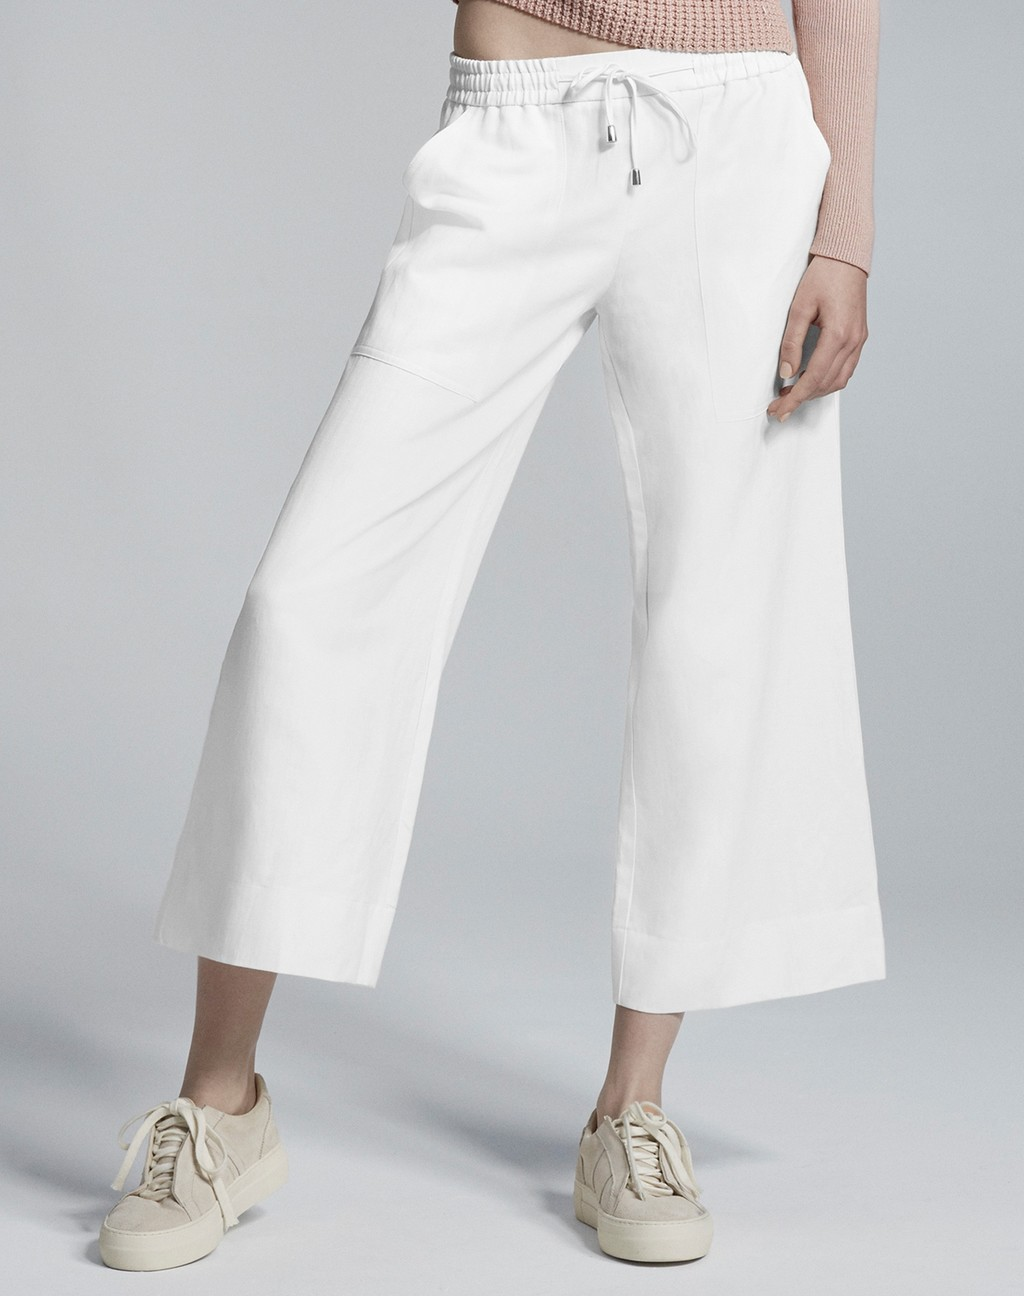 Summer Wide Leg Crop Soft White - pattern: plain; waist detail: belted waist/tie at waist/drawstring; waist: mid/regular rise; predominant colour: white; occasions: casual; length: calf length; fibres: linen - 100%; fit: wide leg; pattern type: fabric; texture group: woven light midweight; style: standard; season: s/s 2016; wardrobe: basic